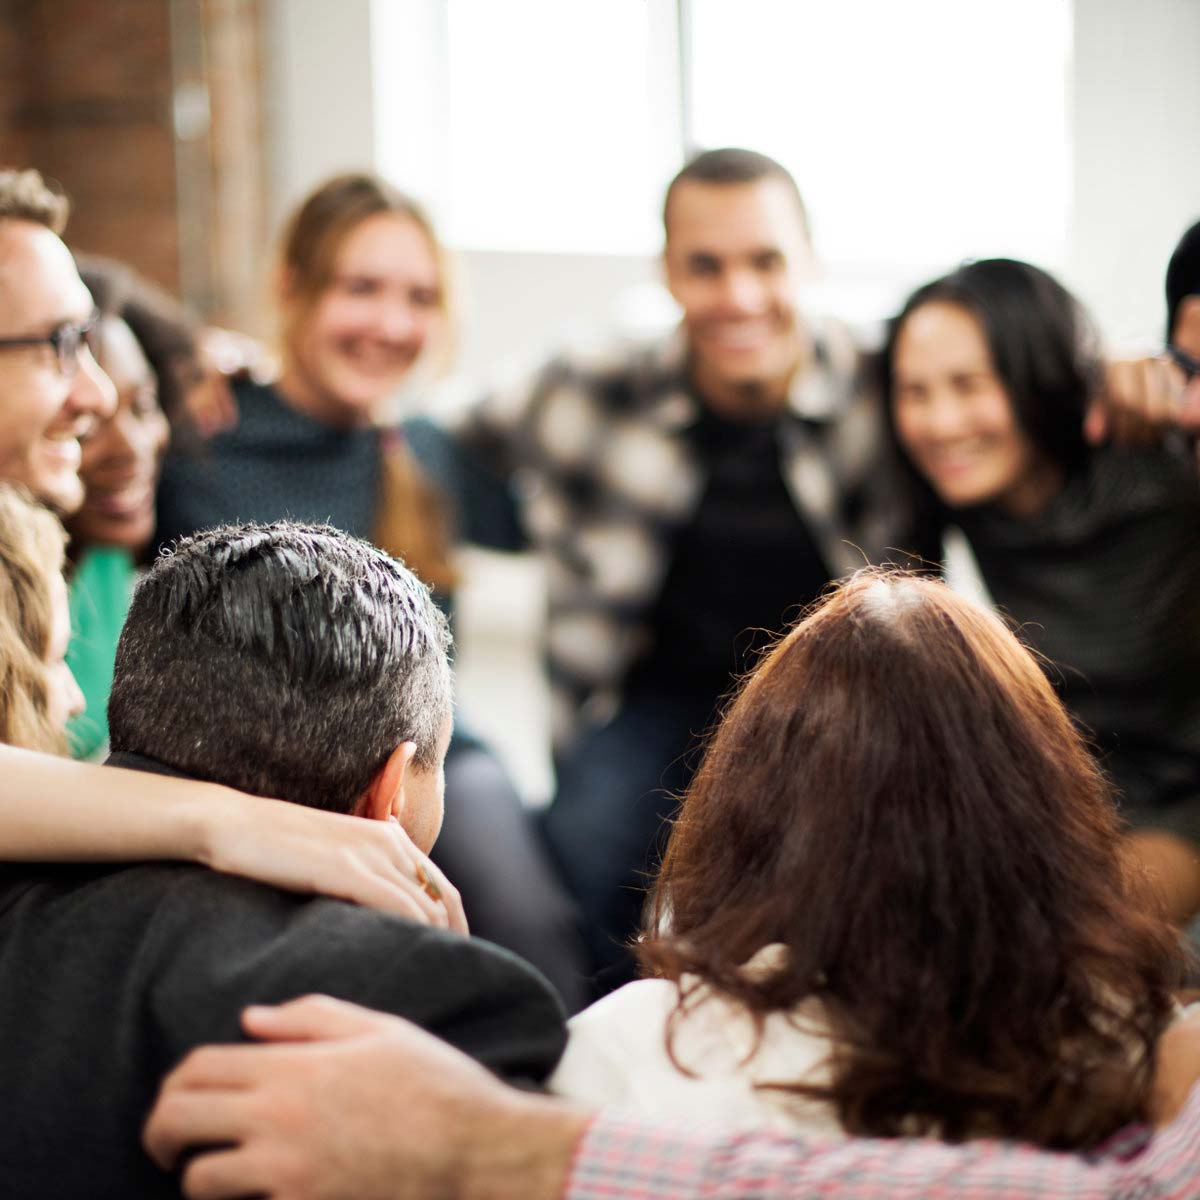 A support group huddles together to show they care for each other